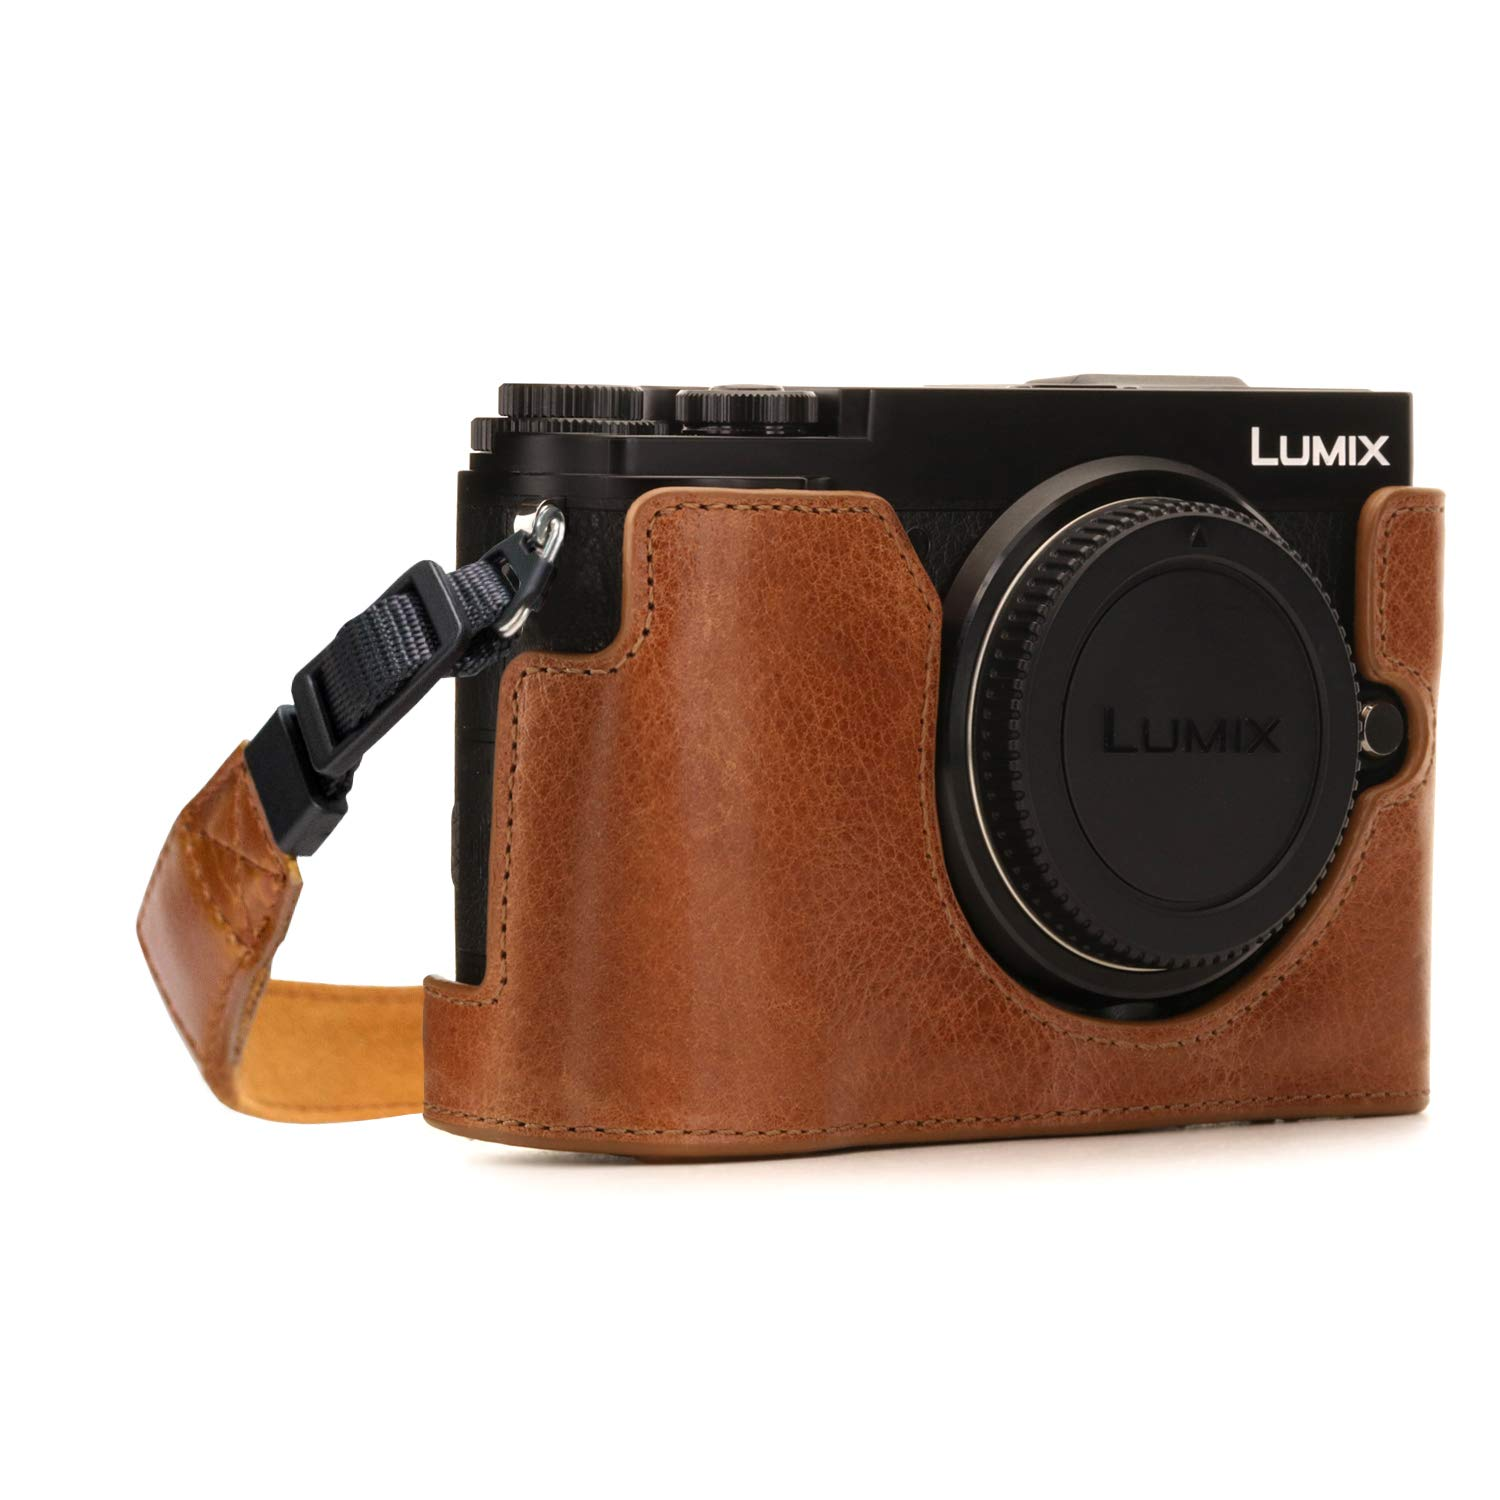 MegaGear MG1443 Panasonic Lumix DC-GX9 Ever Ready Genuine Leather Camera Half Case and Strap, Light Brown